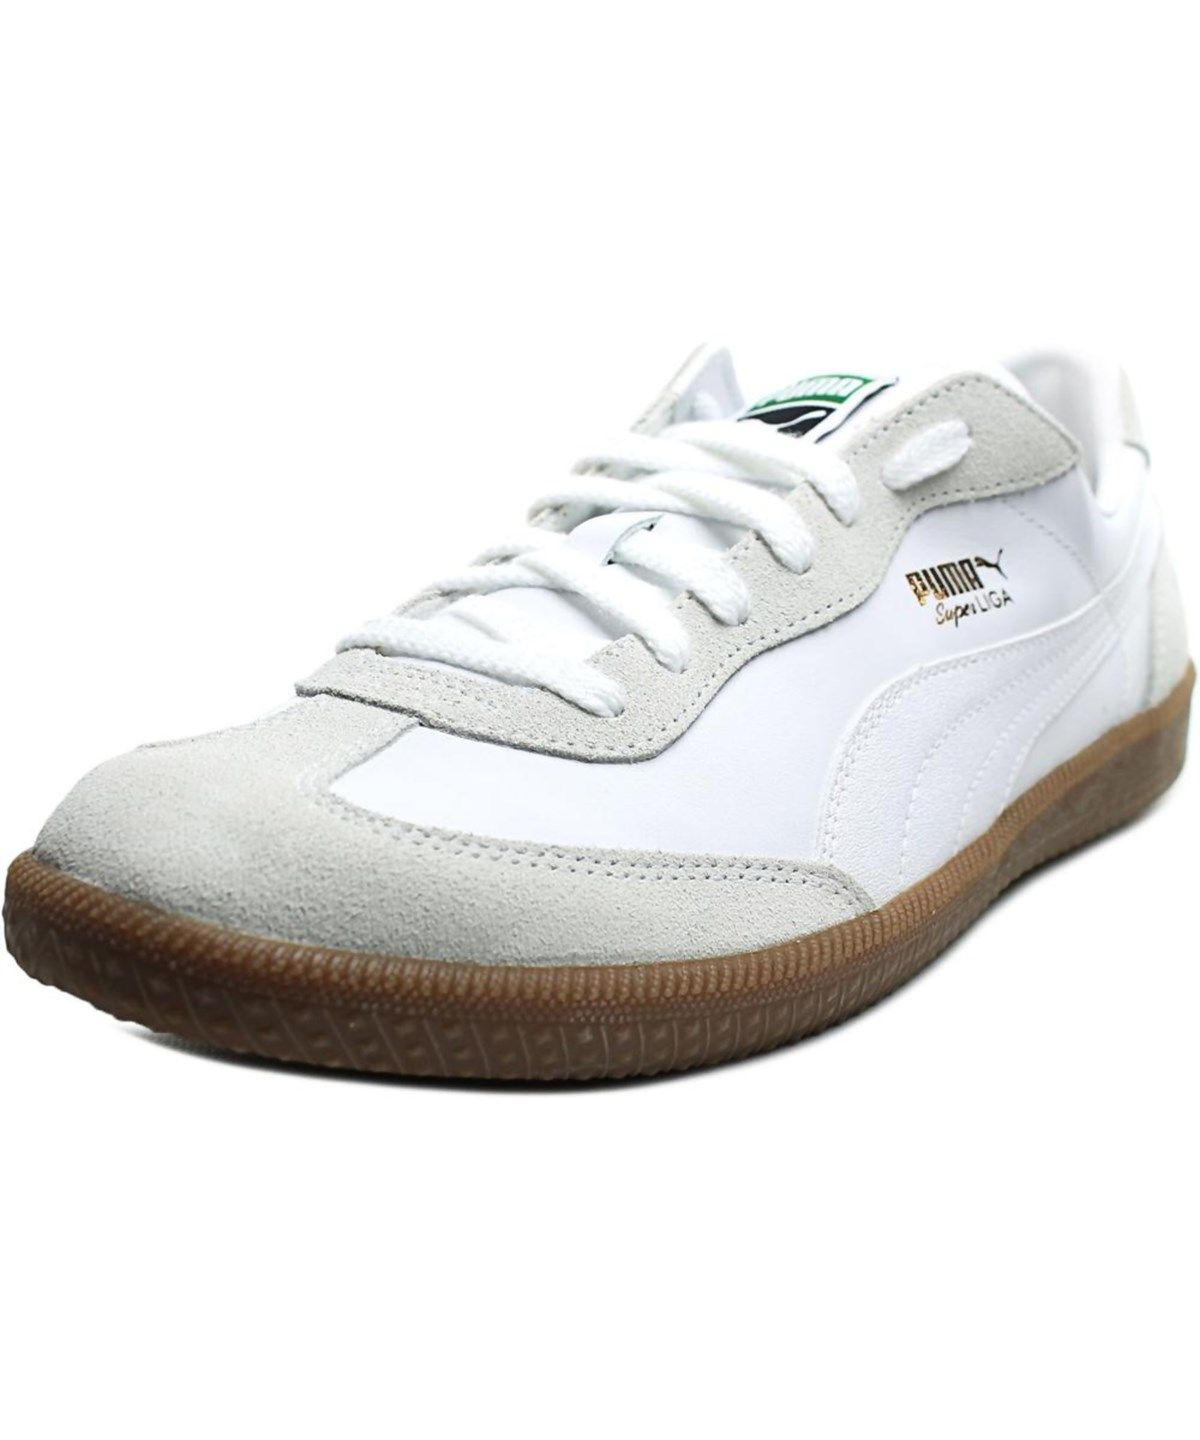 Discounts Puma Star Stars Round Toe Leather White Sneakers For Men On Sale